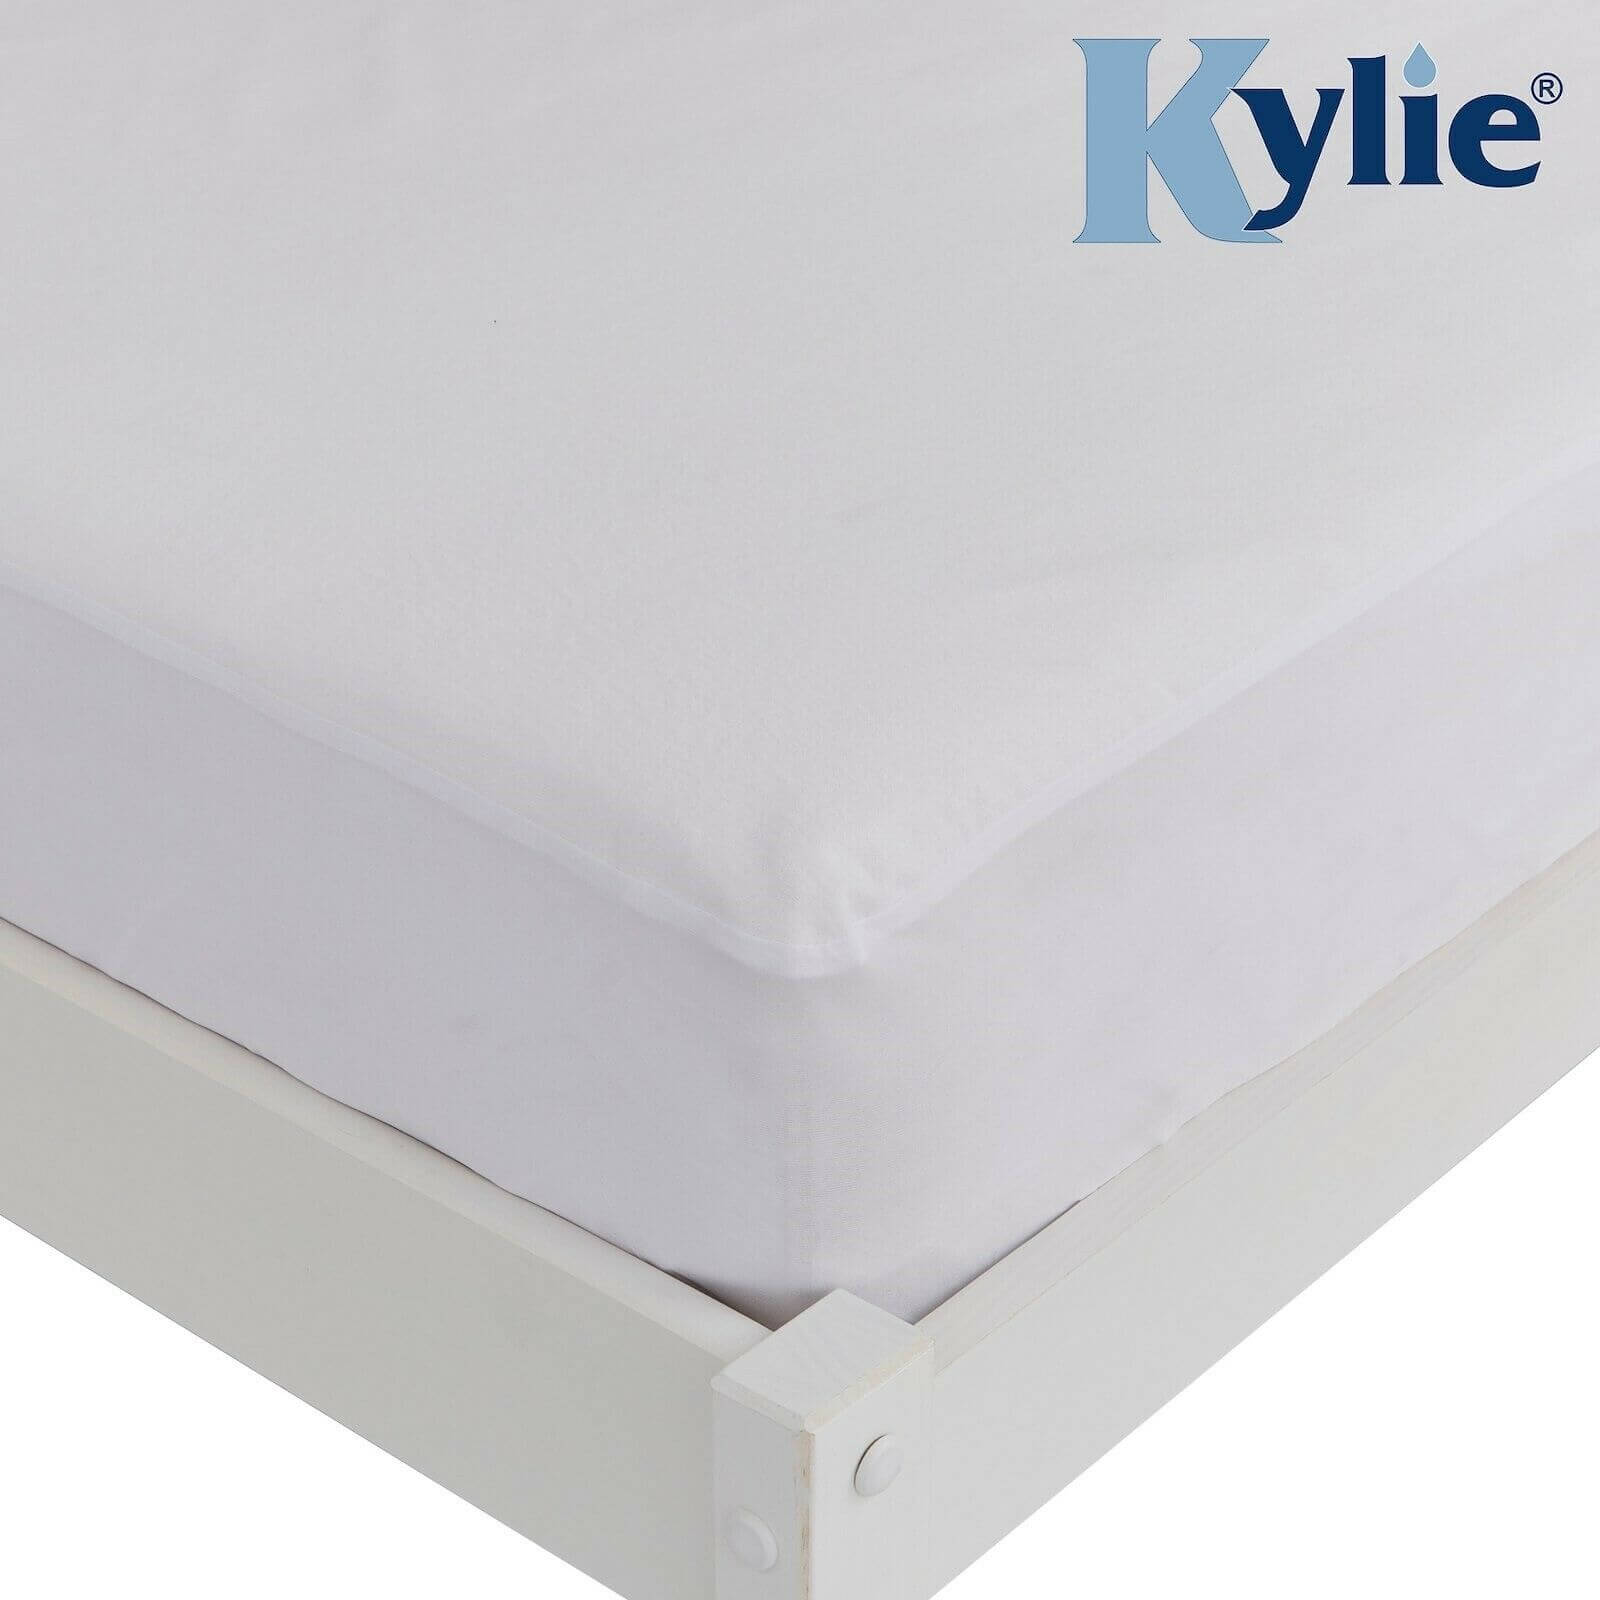 Kylie - Bed Fitted Mattress Protector  - Single/Double/Queen